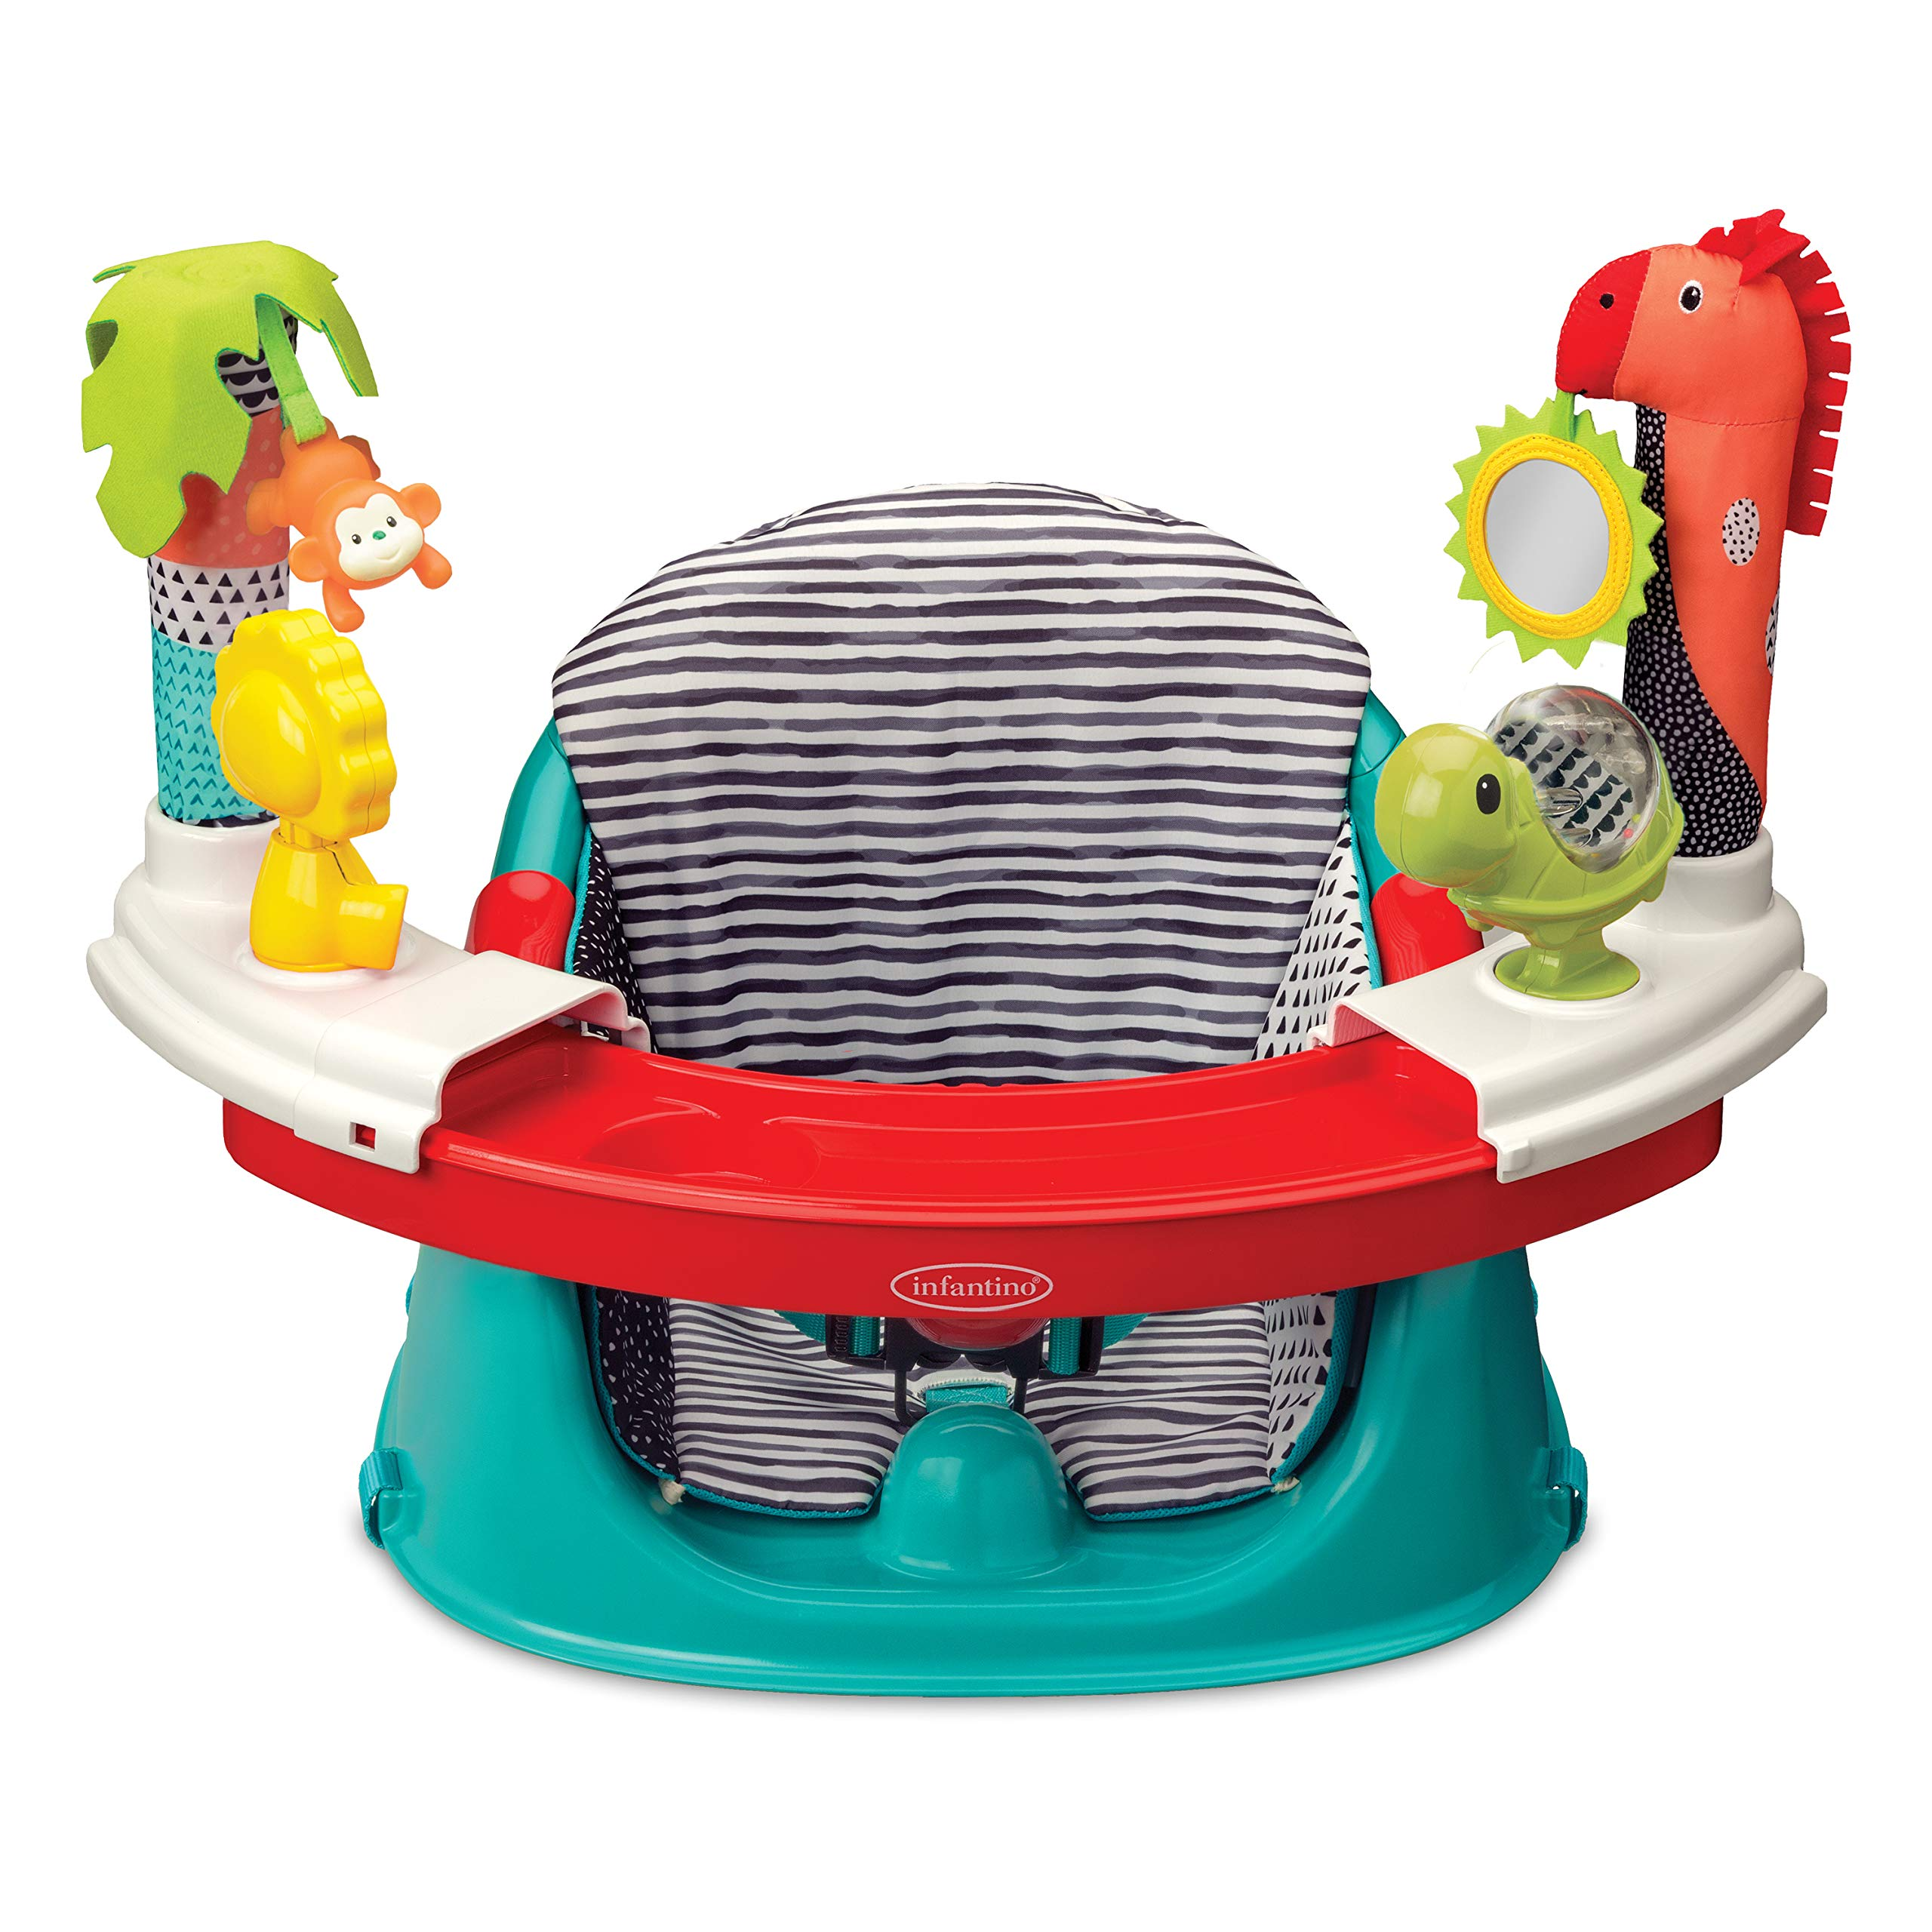 Infantino 3-in-1 Discovery Booster Seat